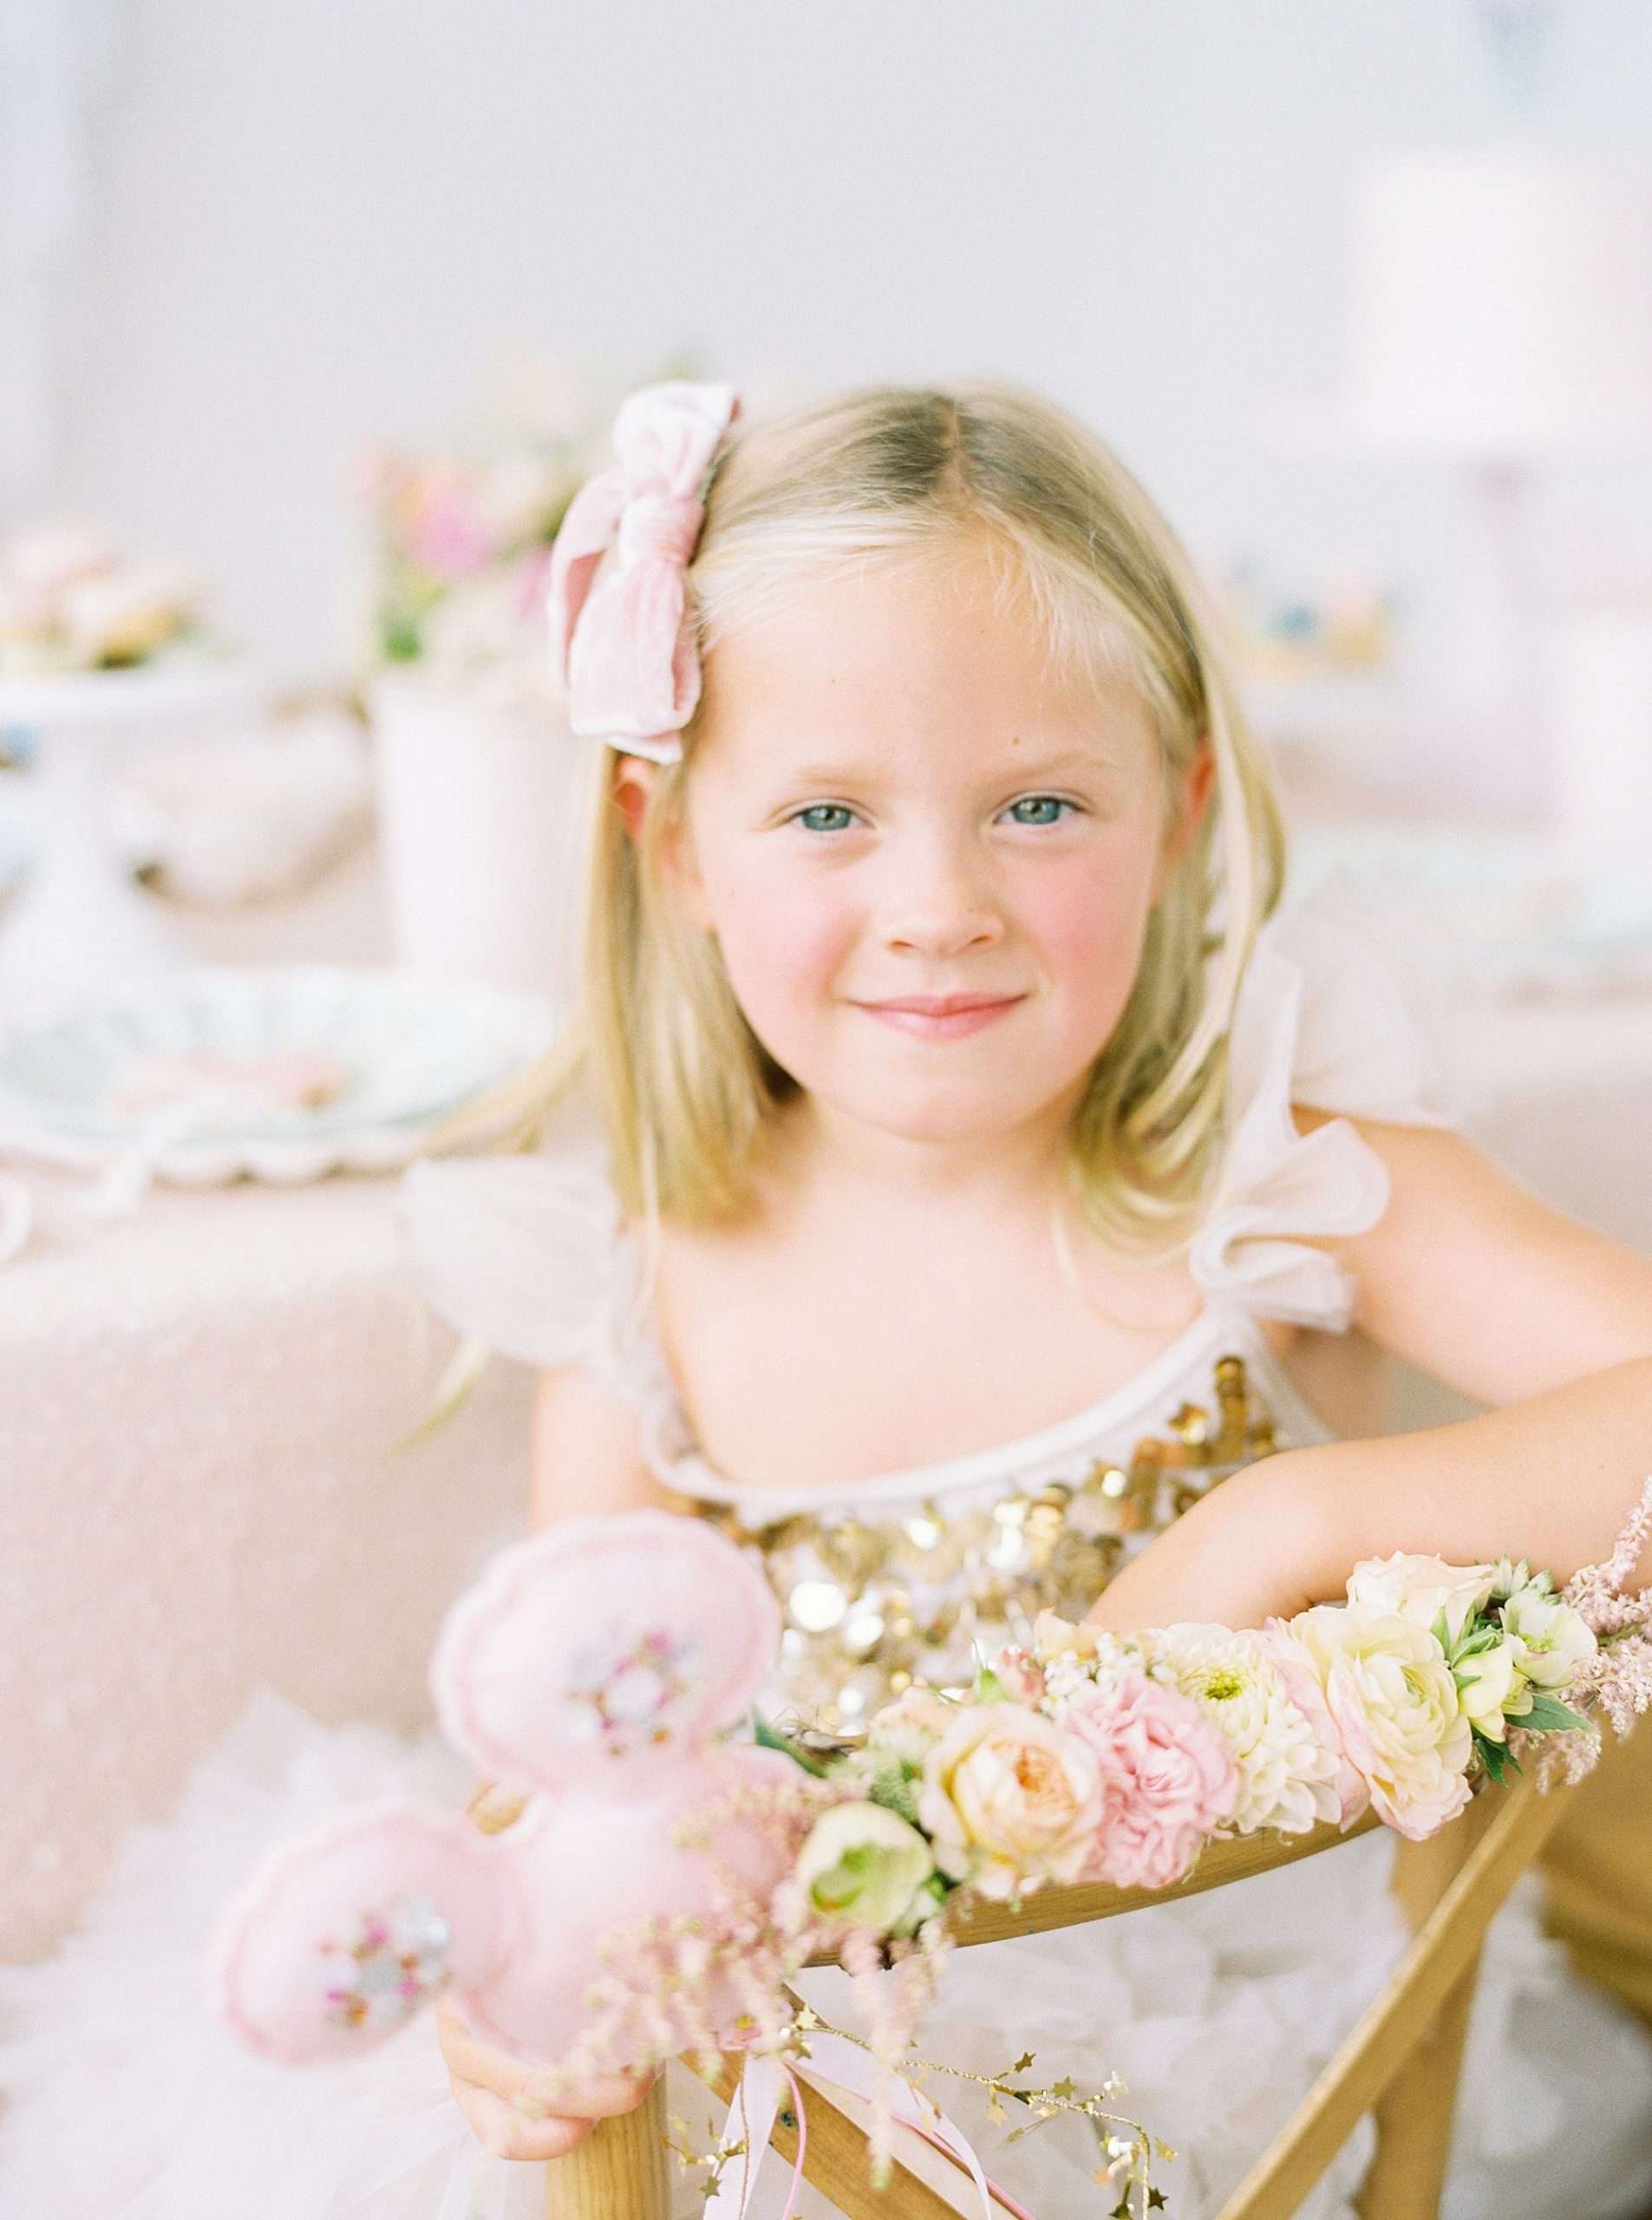 Vintage Disney Birthday Party for Princess Nora's Fourth Birthday - Featured on 100 Layer Cake - Ashley Baumgartner - Parker Grace Events_0023.jpg